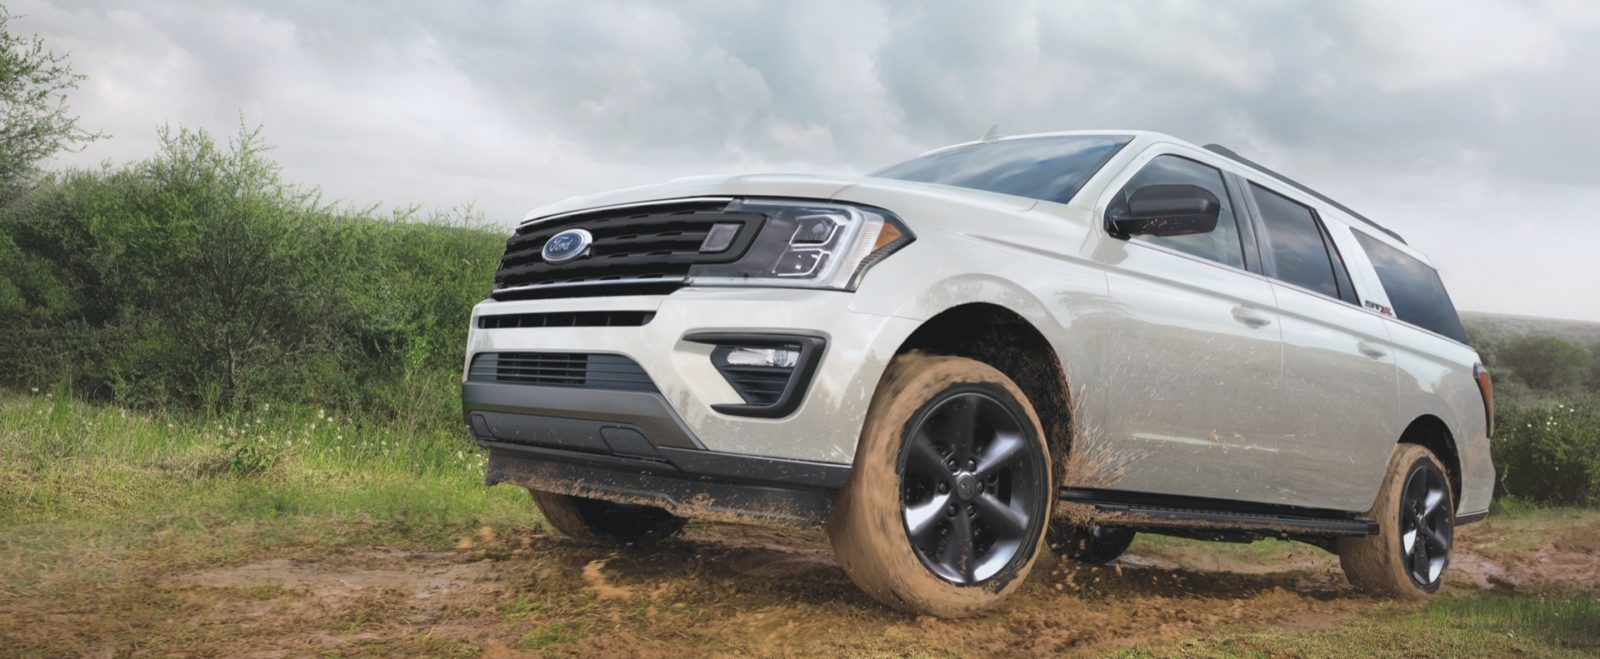 2021-ford-expedition-stx:-lower-$51,690-price-can't-match-tahoe,-armada